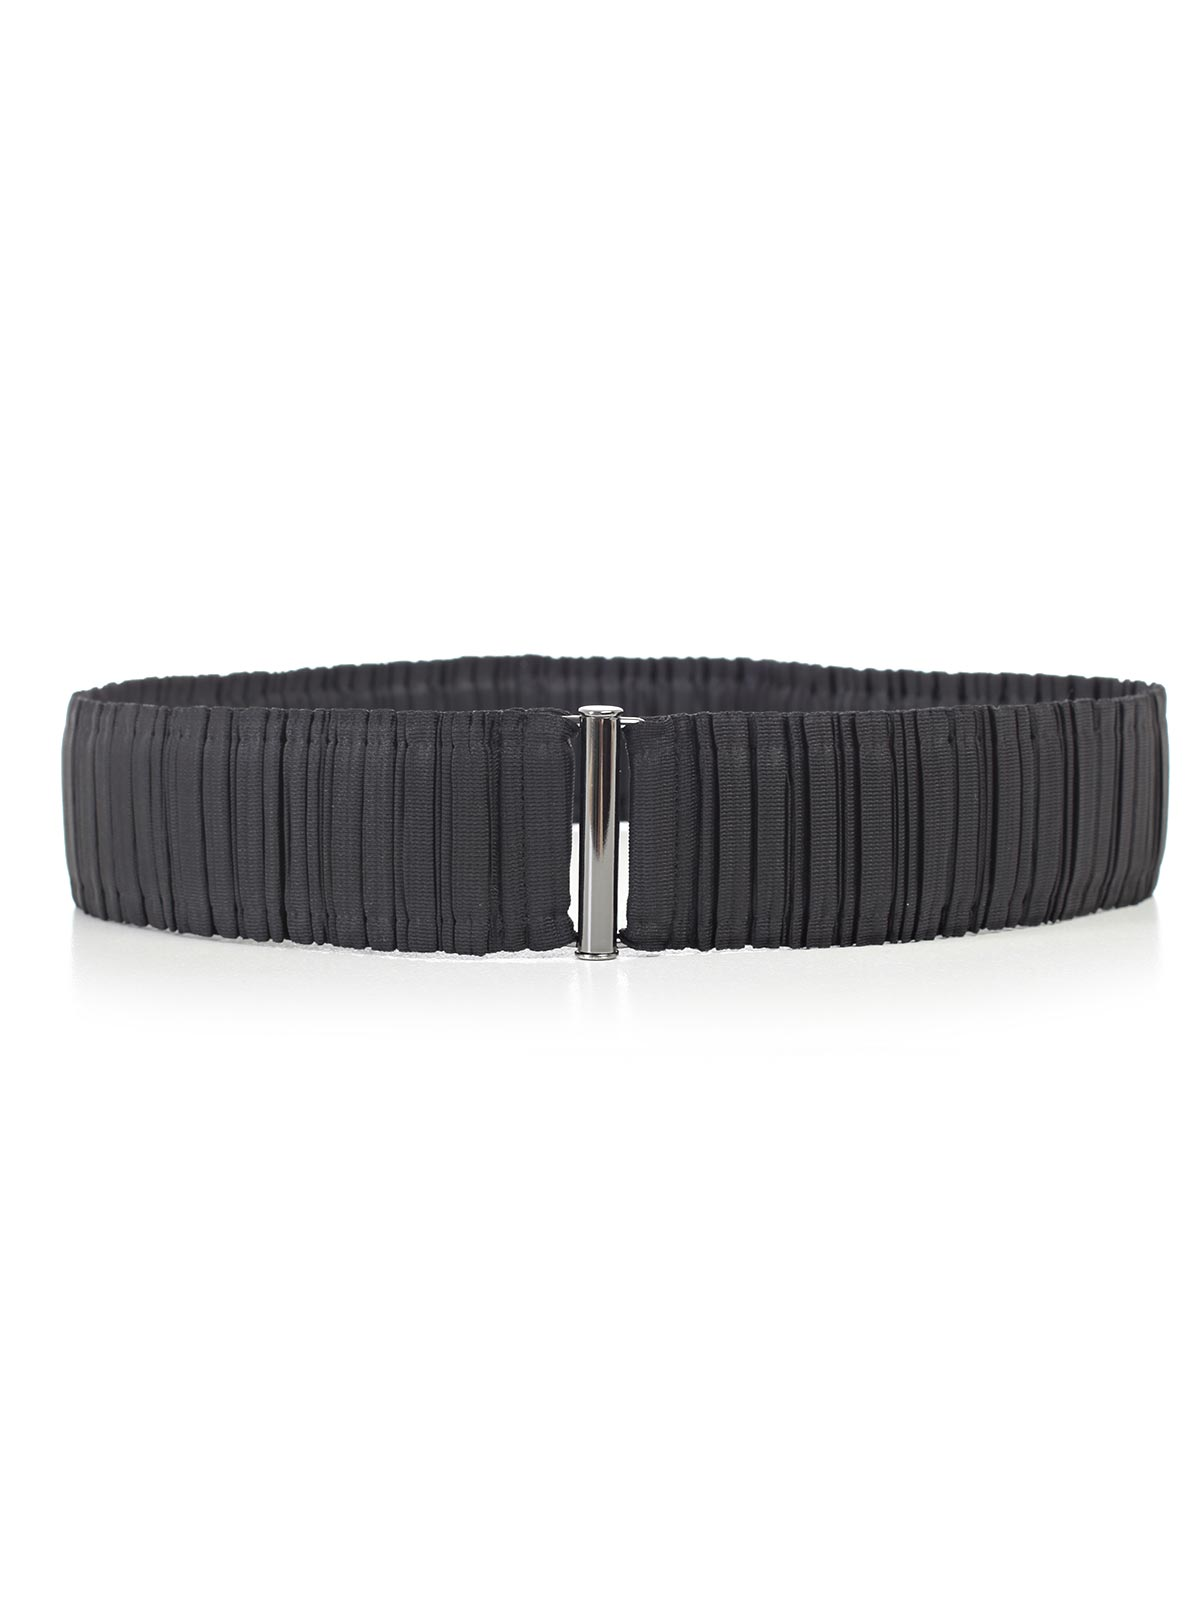 Picture of PLEATS PLEASE BY ISSEY MIYAKE BELT